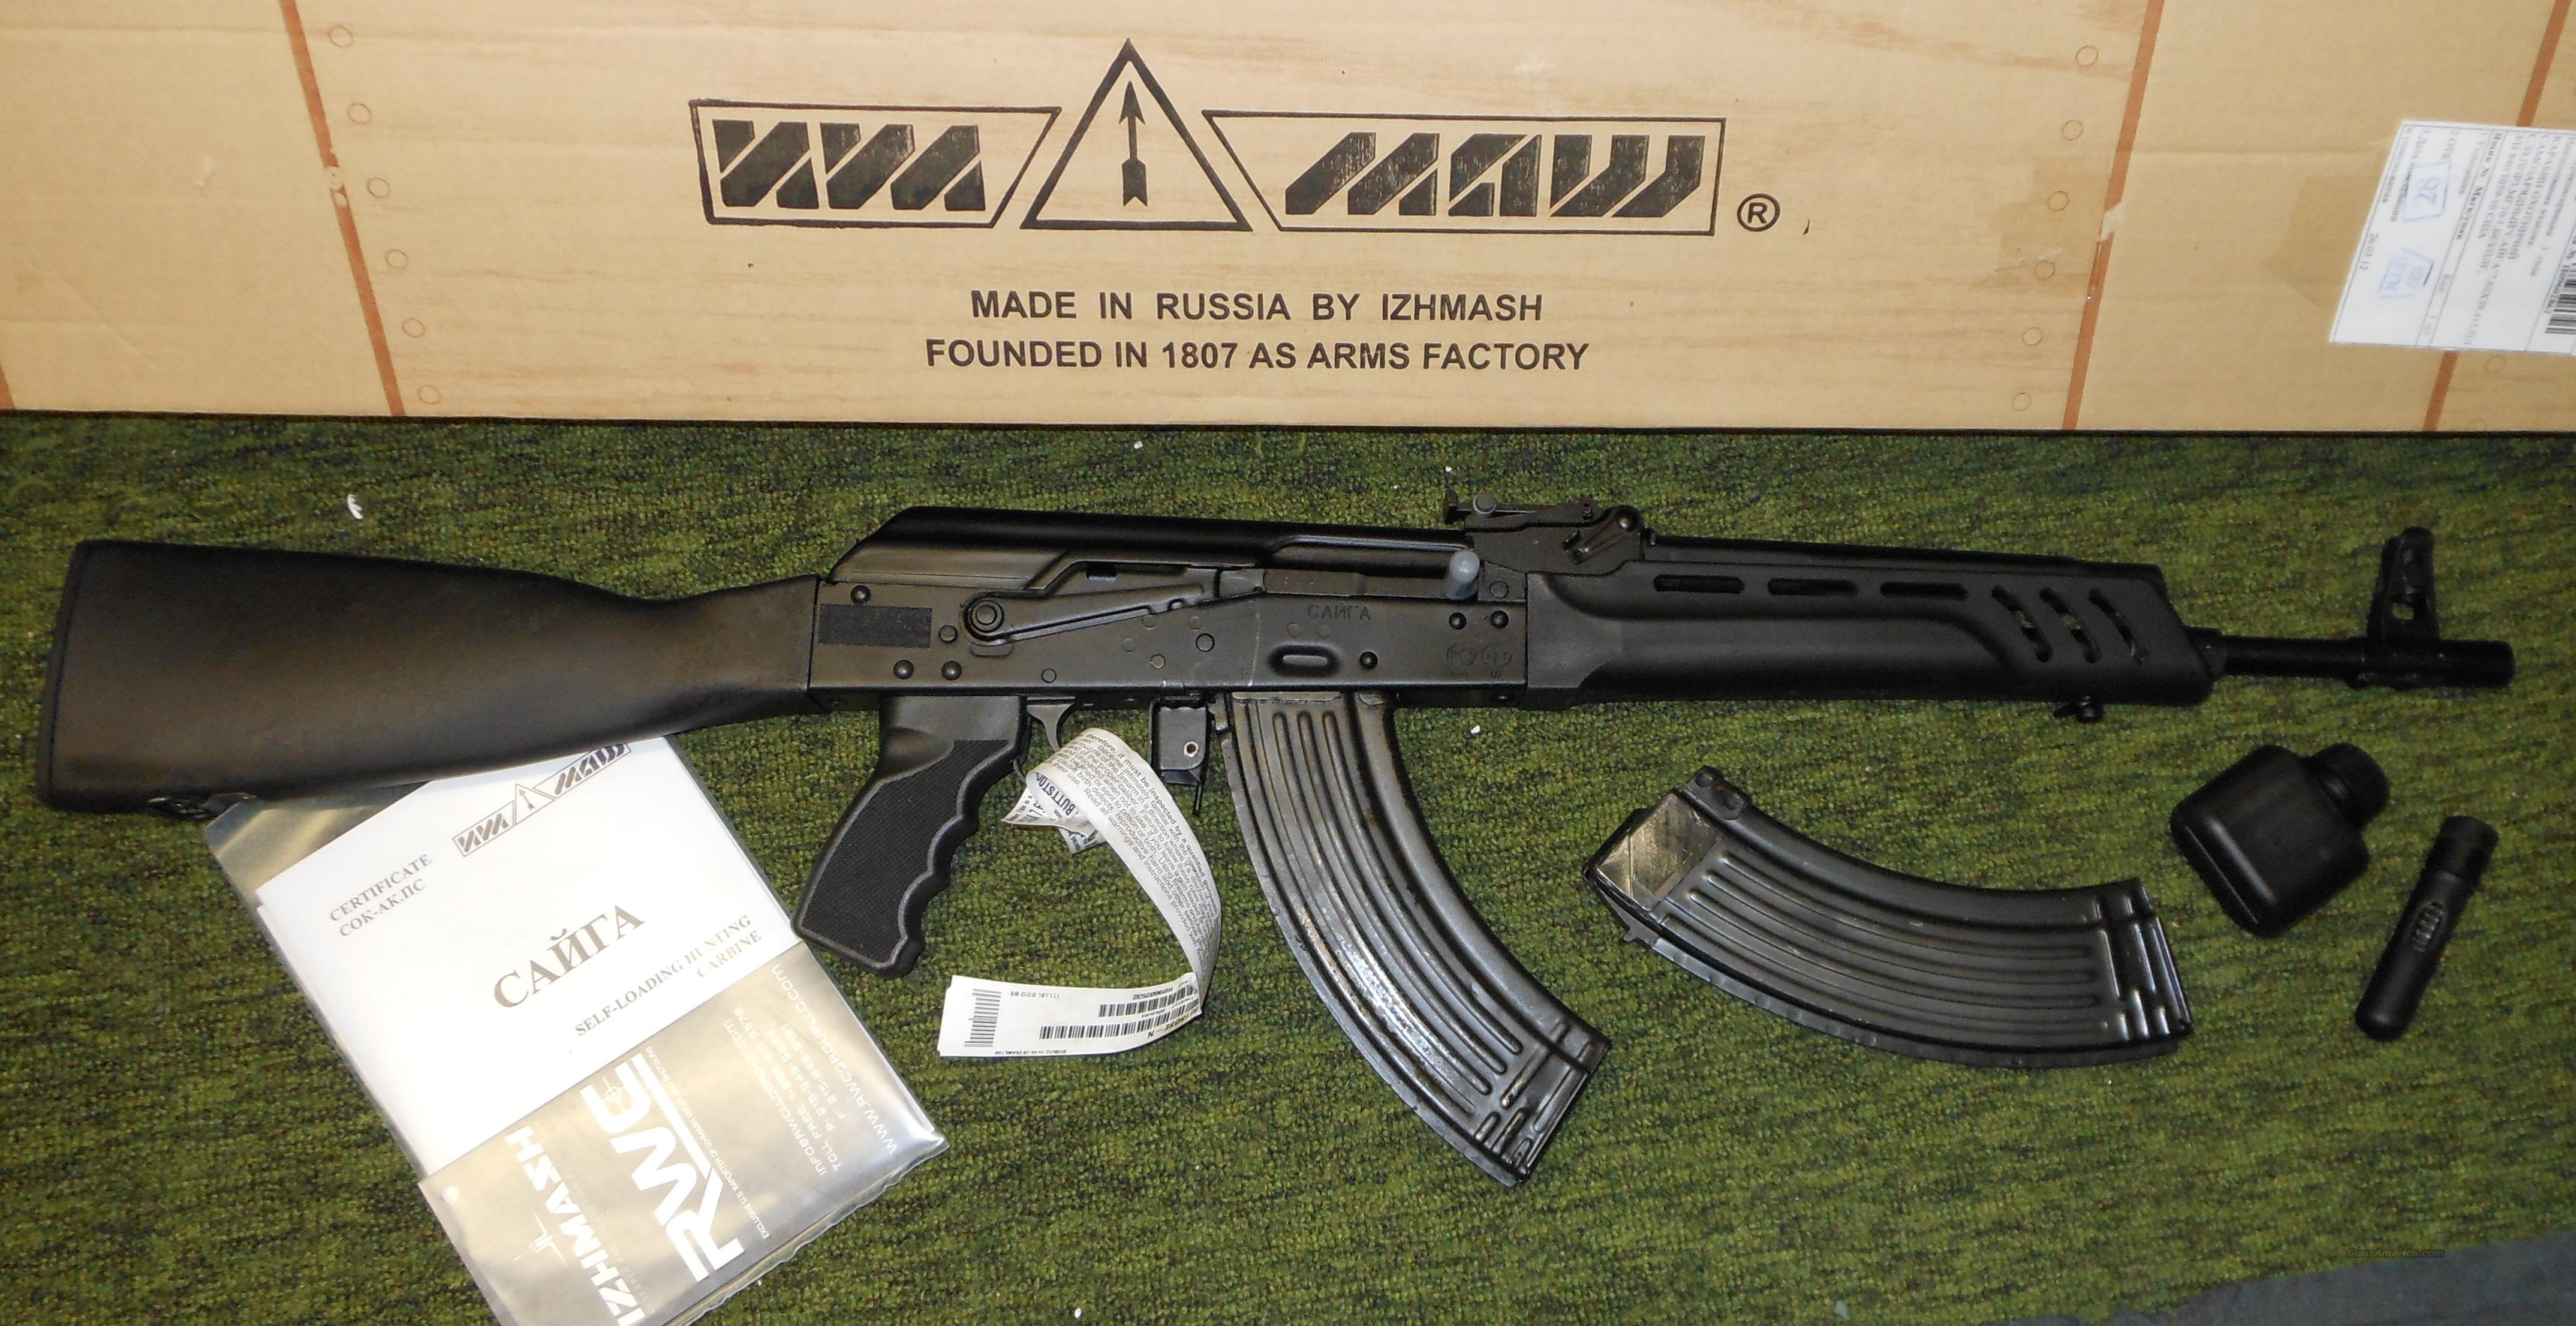 CENTURY ARMS SAIGA 7.62X39 RIFLE (RI1808E) MODIFIED W/ PISTOL GRIP AND ACCEPTS STANDARD AK MAGS  Guns > Rifles > Century International Arms - Rifles > Rifles